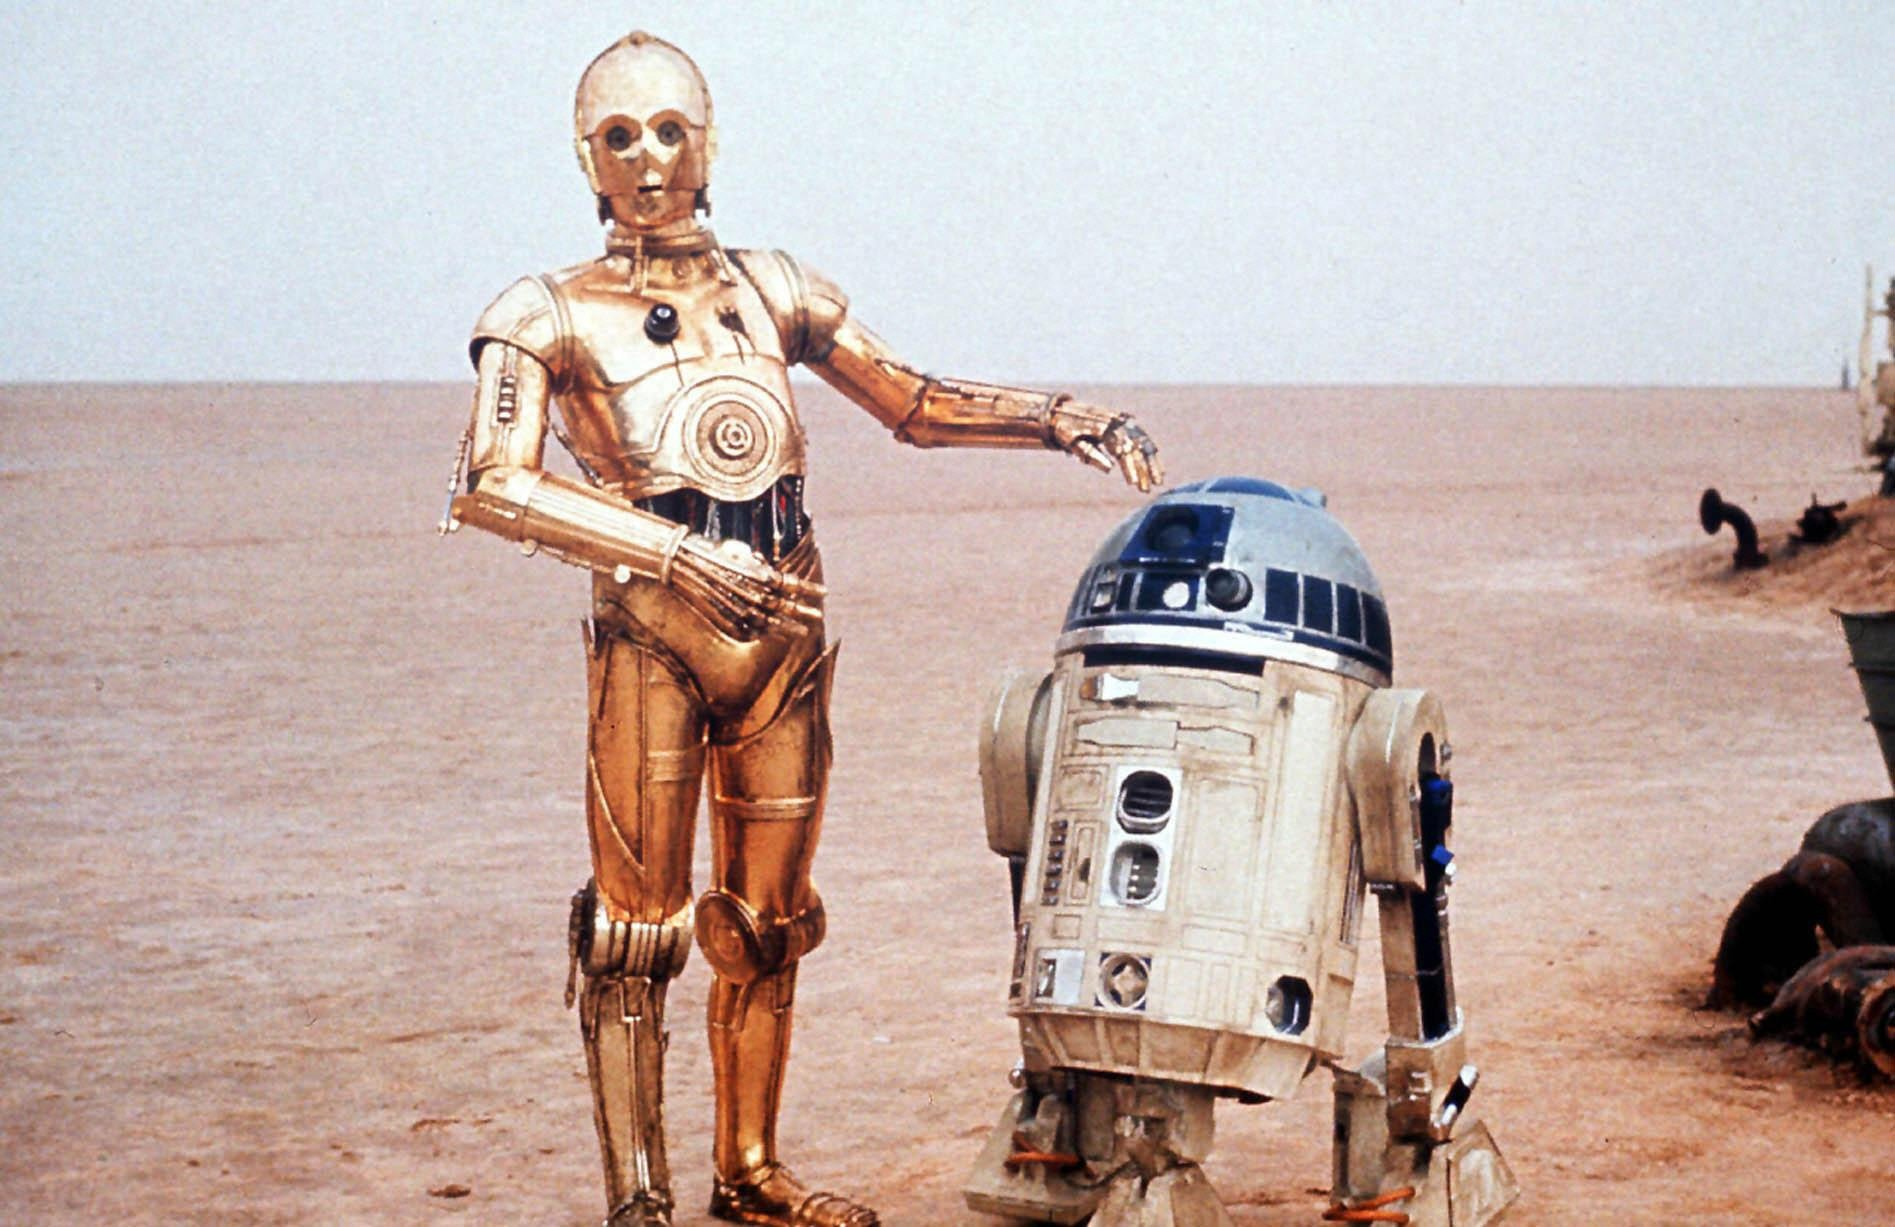 Twentieth Century Fox undated handout photo of a scene from the film Star Wars showing C3PO and R2D2 (R) . Star Wars metal cutie R2D2 has been voted the world's favourite robot. Another robot from the 1977 film classic, worry-prone C3PO, also makes it into the top 15 poll, in fourth place for the poll for Amazon.co.uk and IMDB.com. See PA story SHOWBIZ Robots. PA Photo: Twentieth Centry Fox/Handout..A